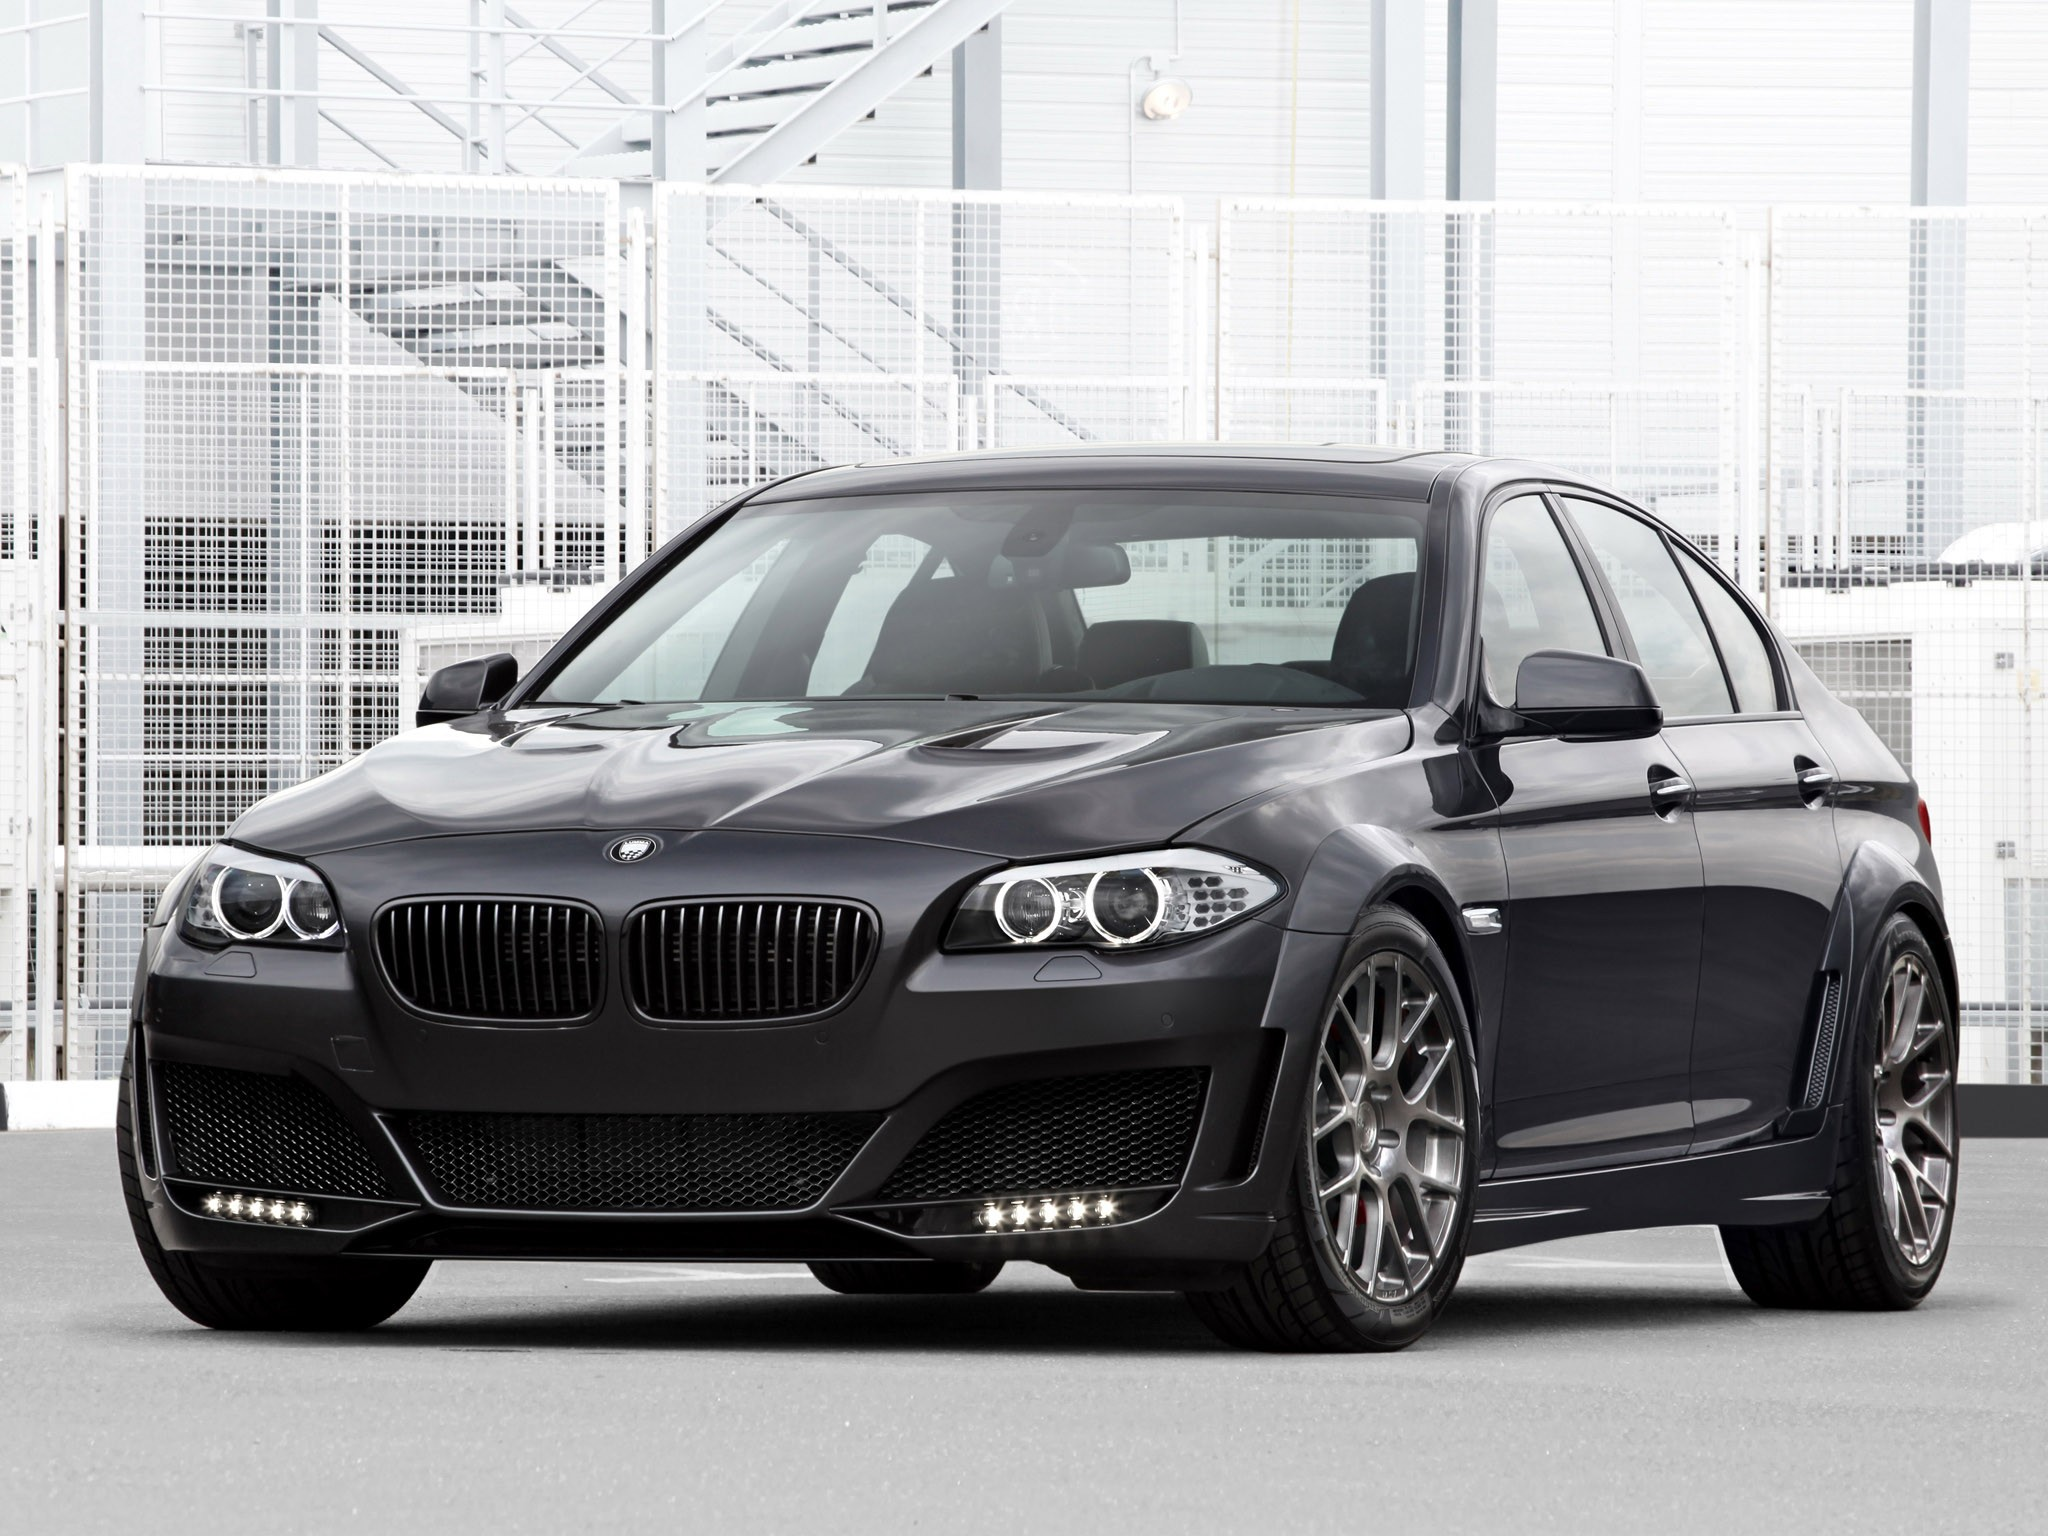 2010 Lumma Design - Bmw 5 Series F10 CLR 500 RS2